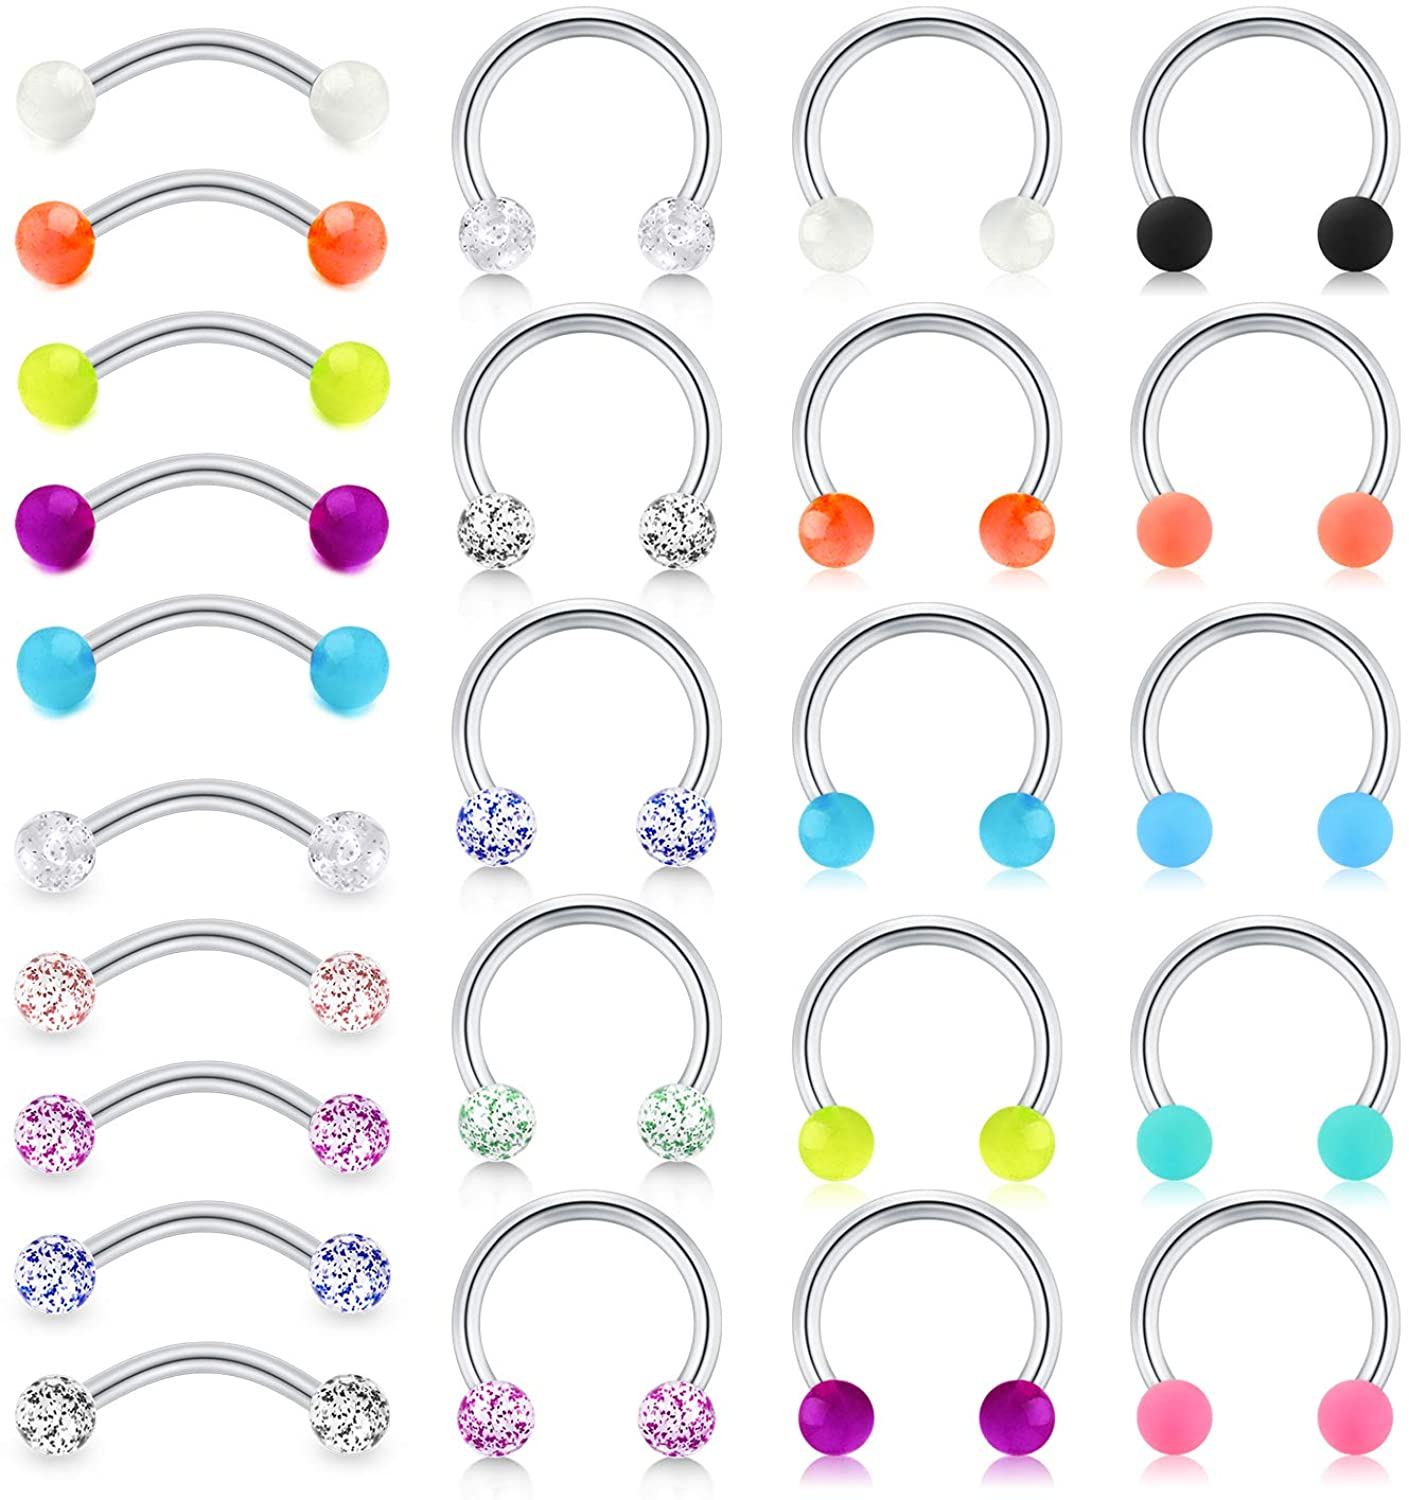 LAURITAMI 16G Rook Earrings Stainless Steel Daith Tragus Piercing Curved Barbell Eyebrow Rings Horseshoe Hoop Earring Cartilage Helix Conch Piercing Jewelry